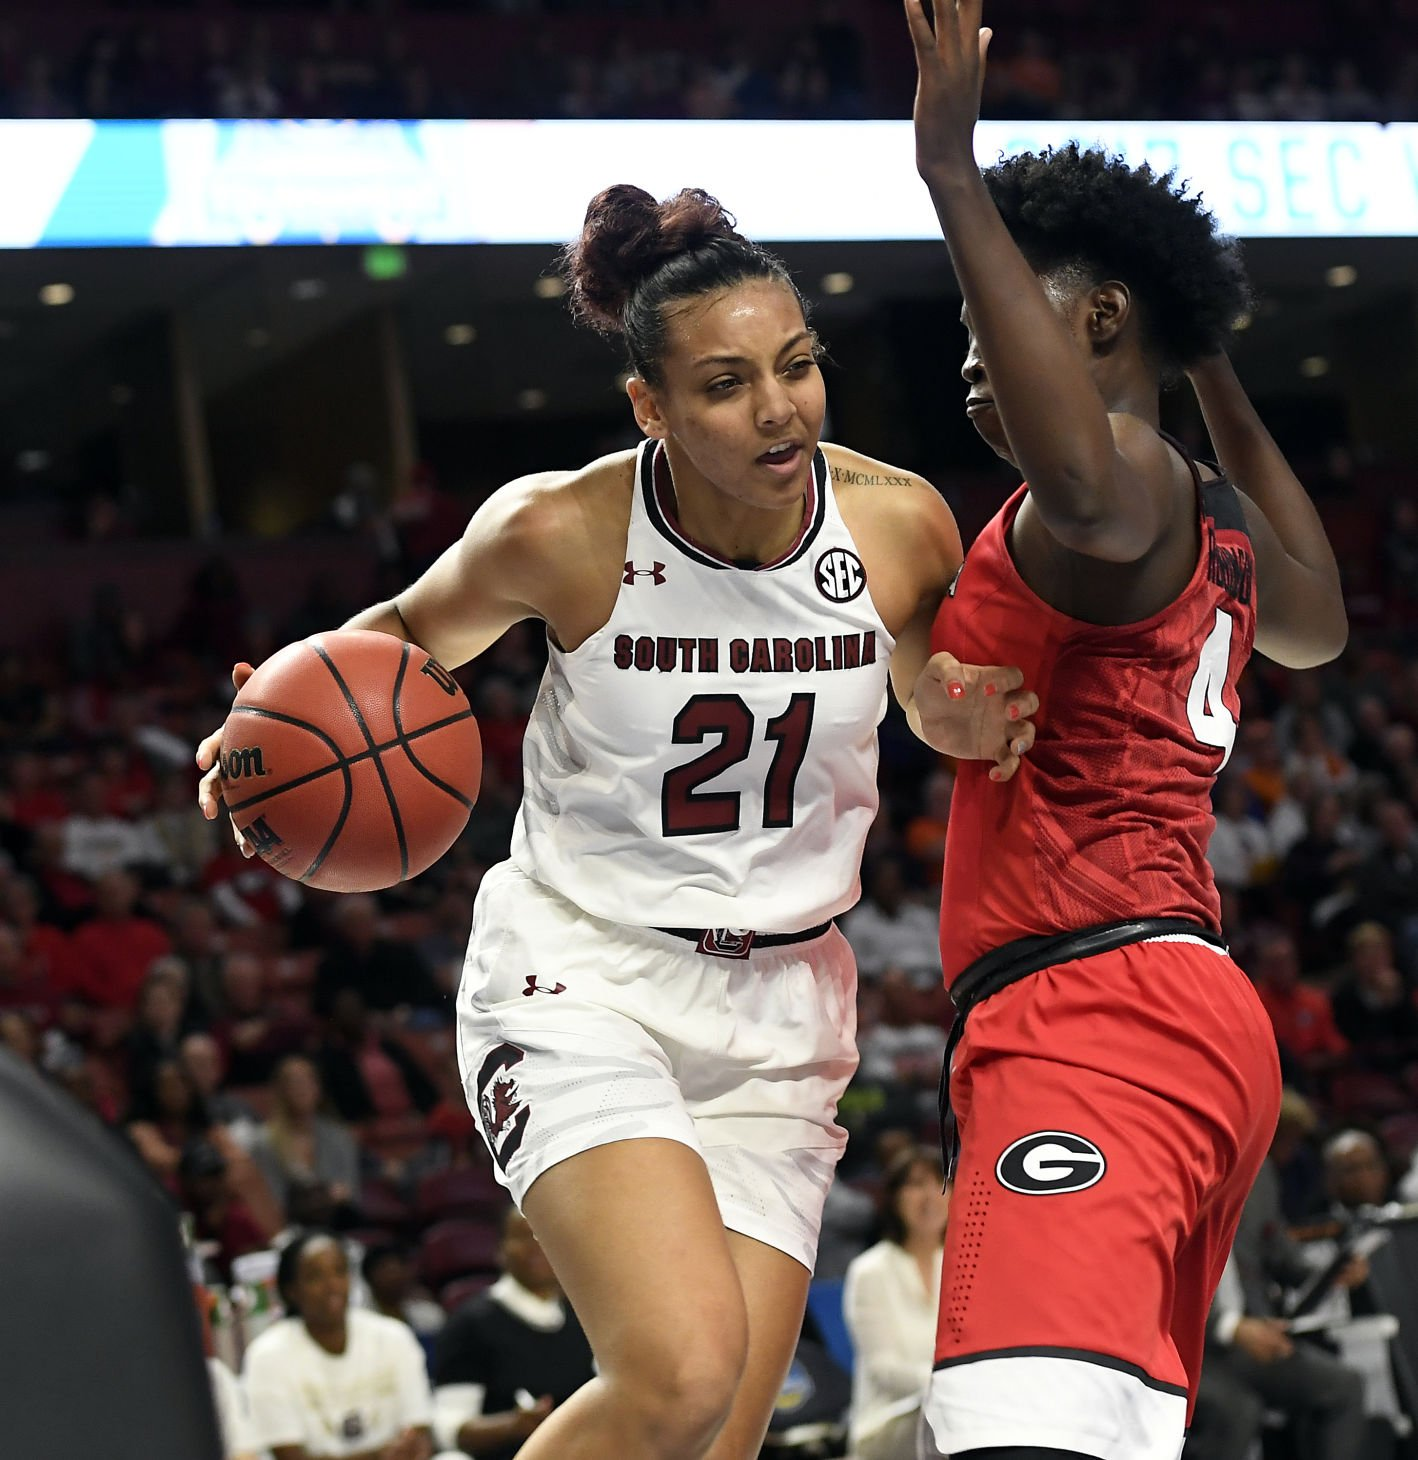 Georgia falls to SC 72-48 in SEC quarterfinals